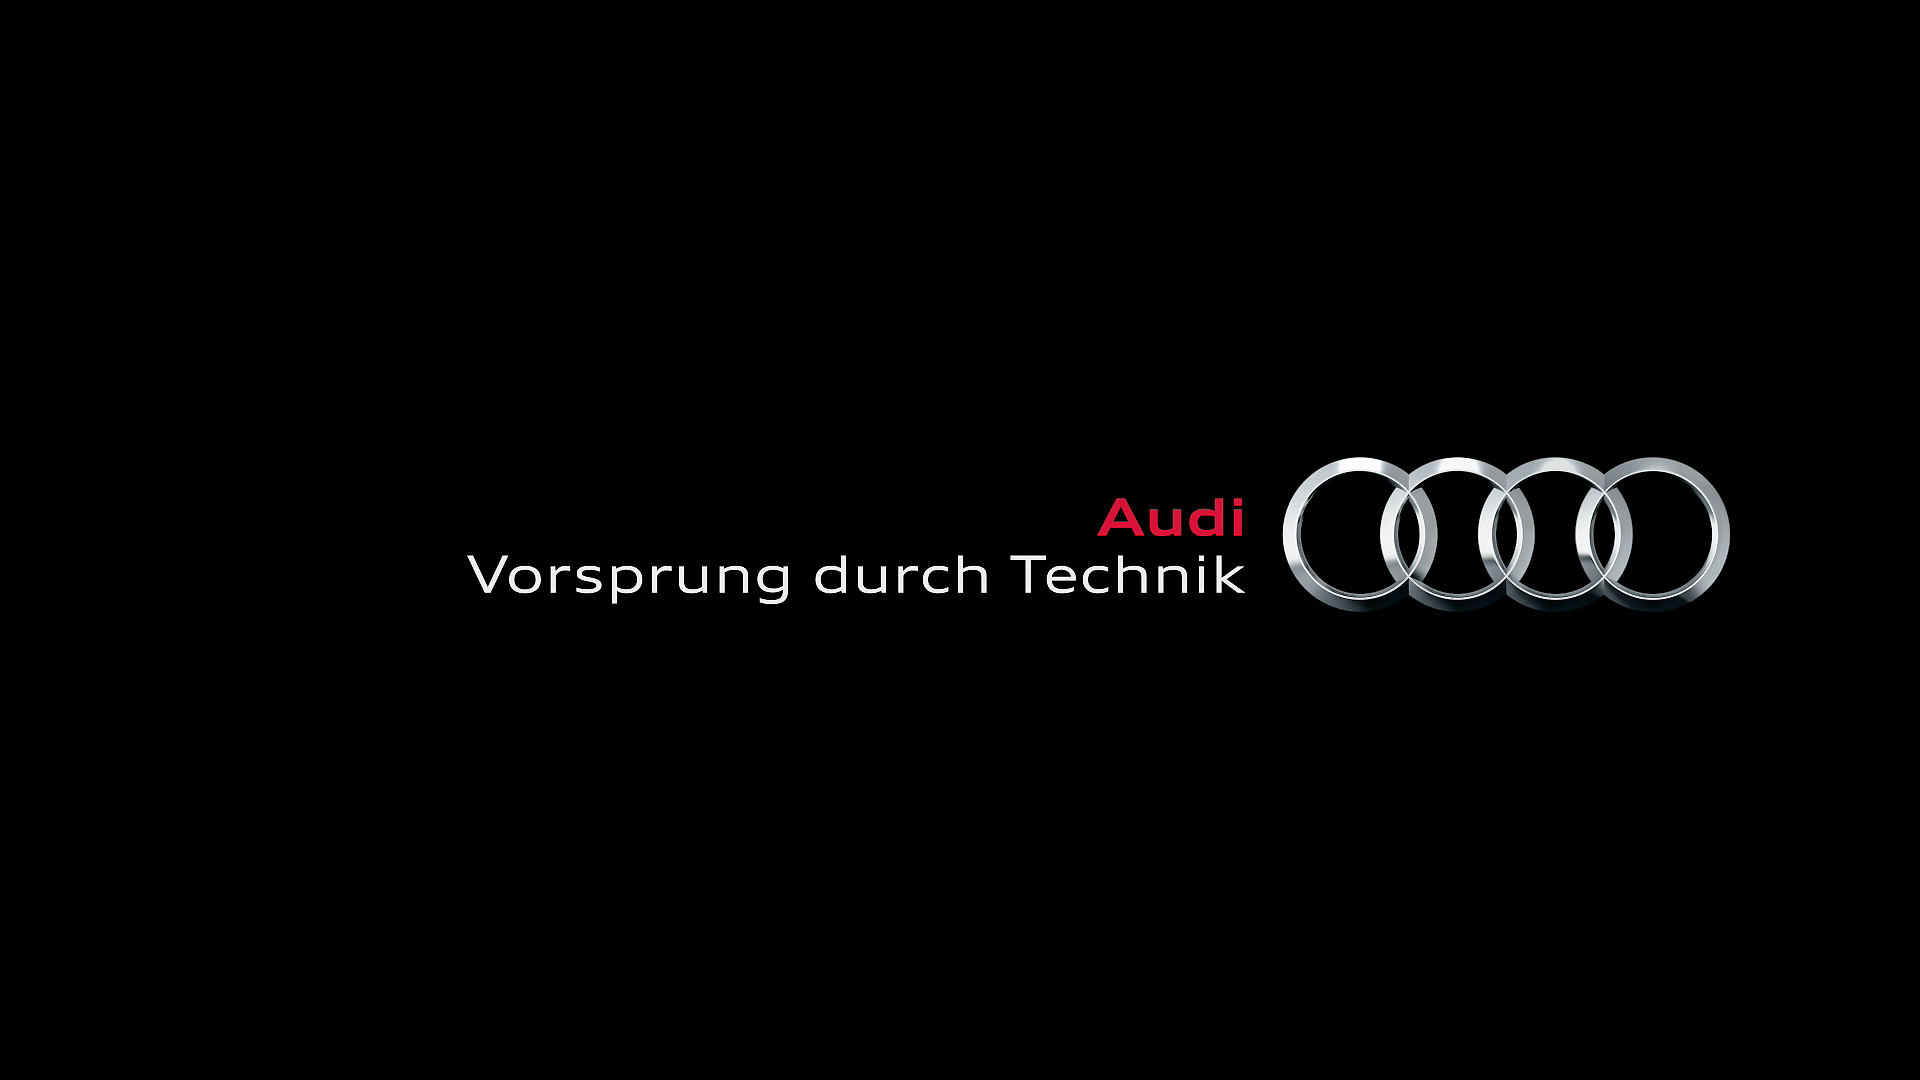 Audi Rings Wallpapers Group 66